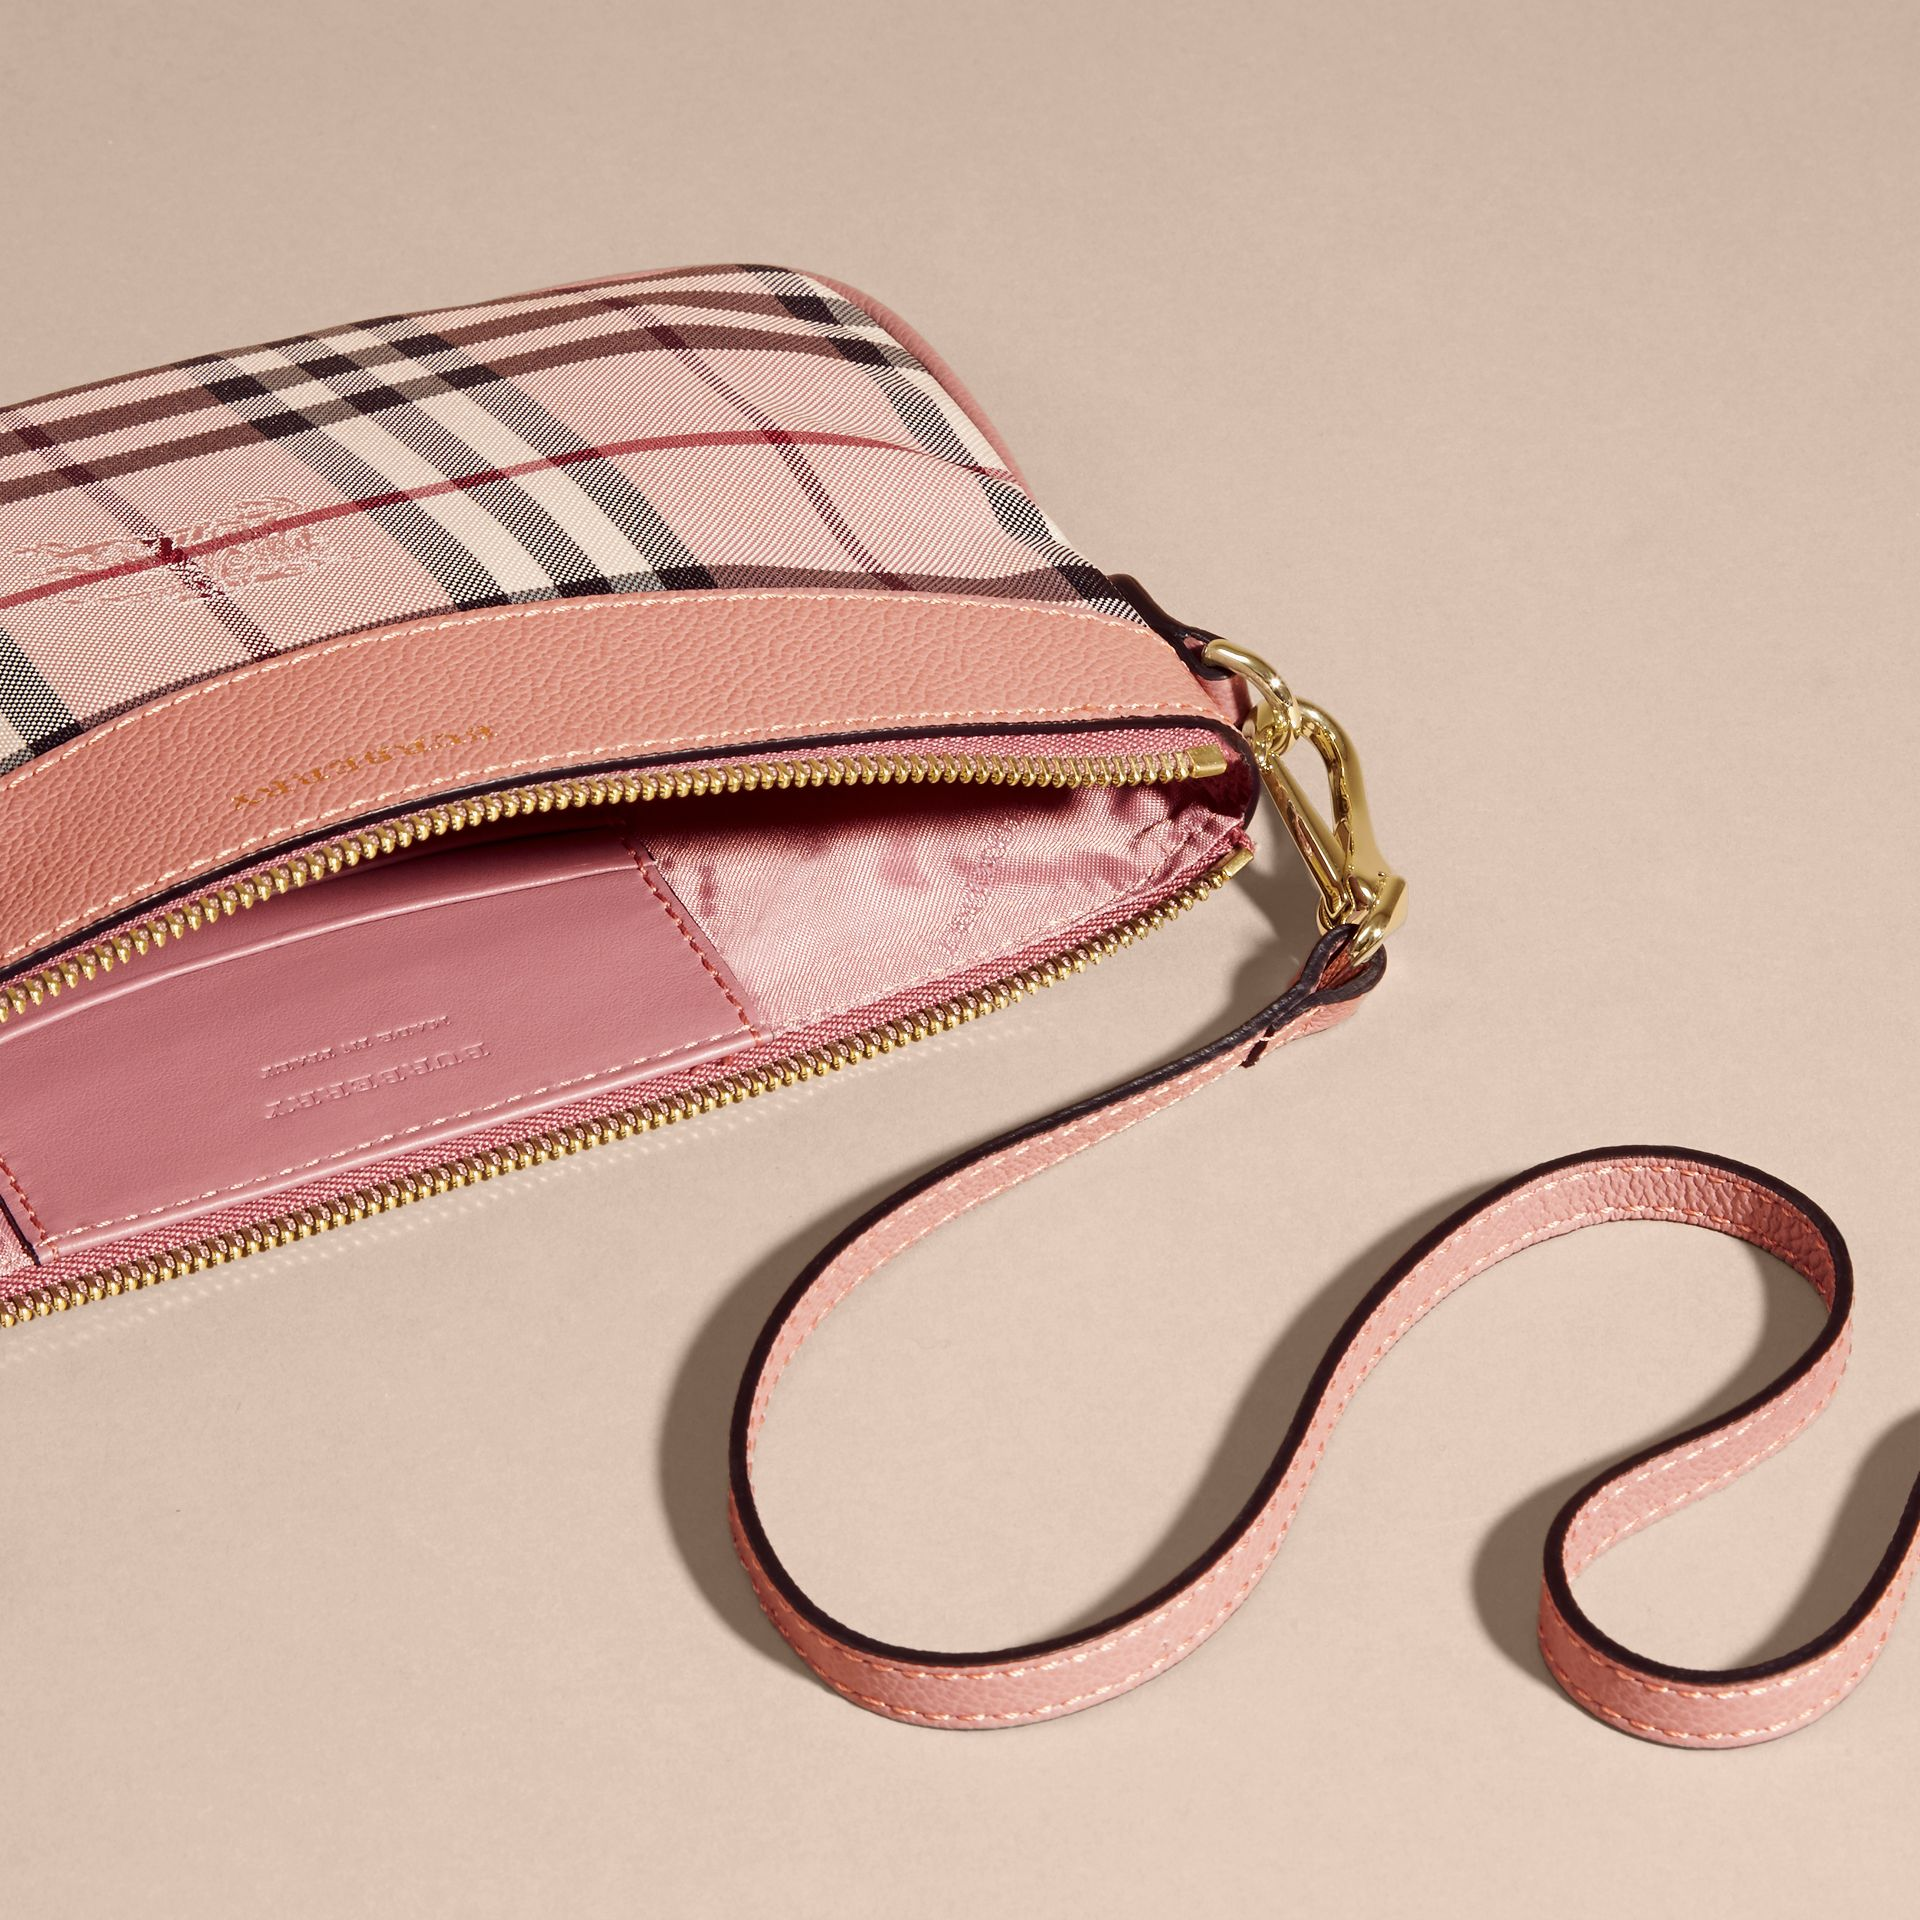 Horseferry Check and Leather Clutch Bag Ash Rose/ Dusty Pink - gallery image 6